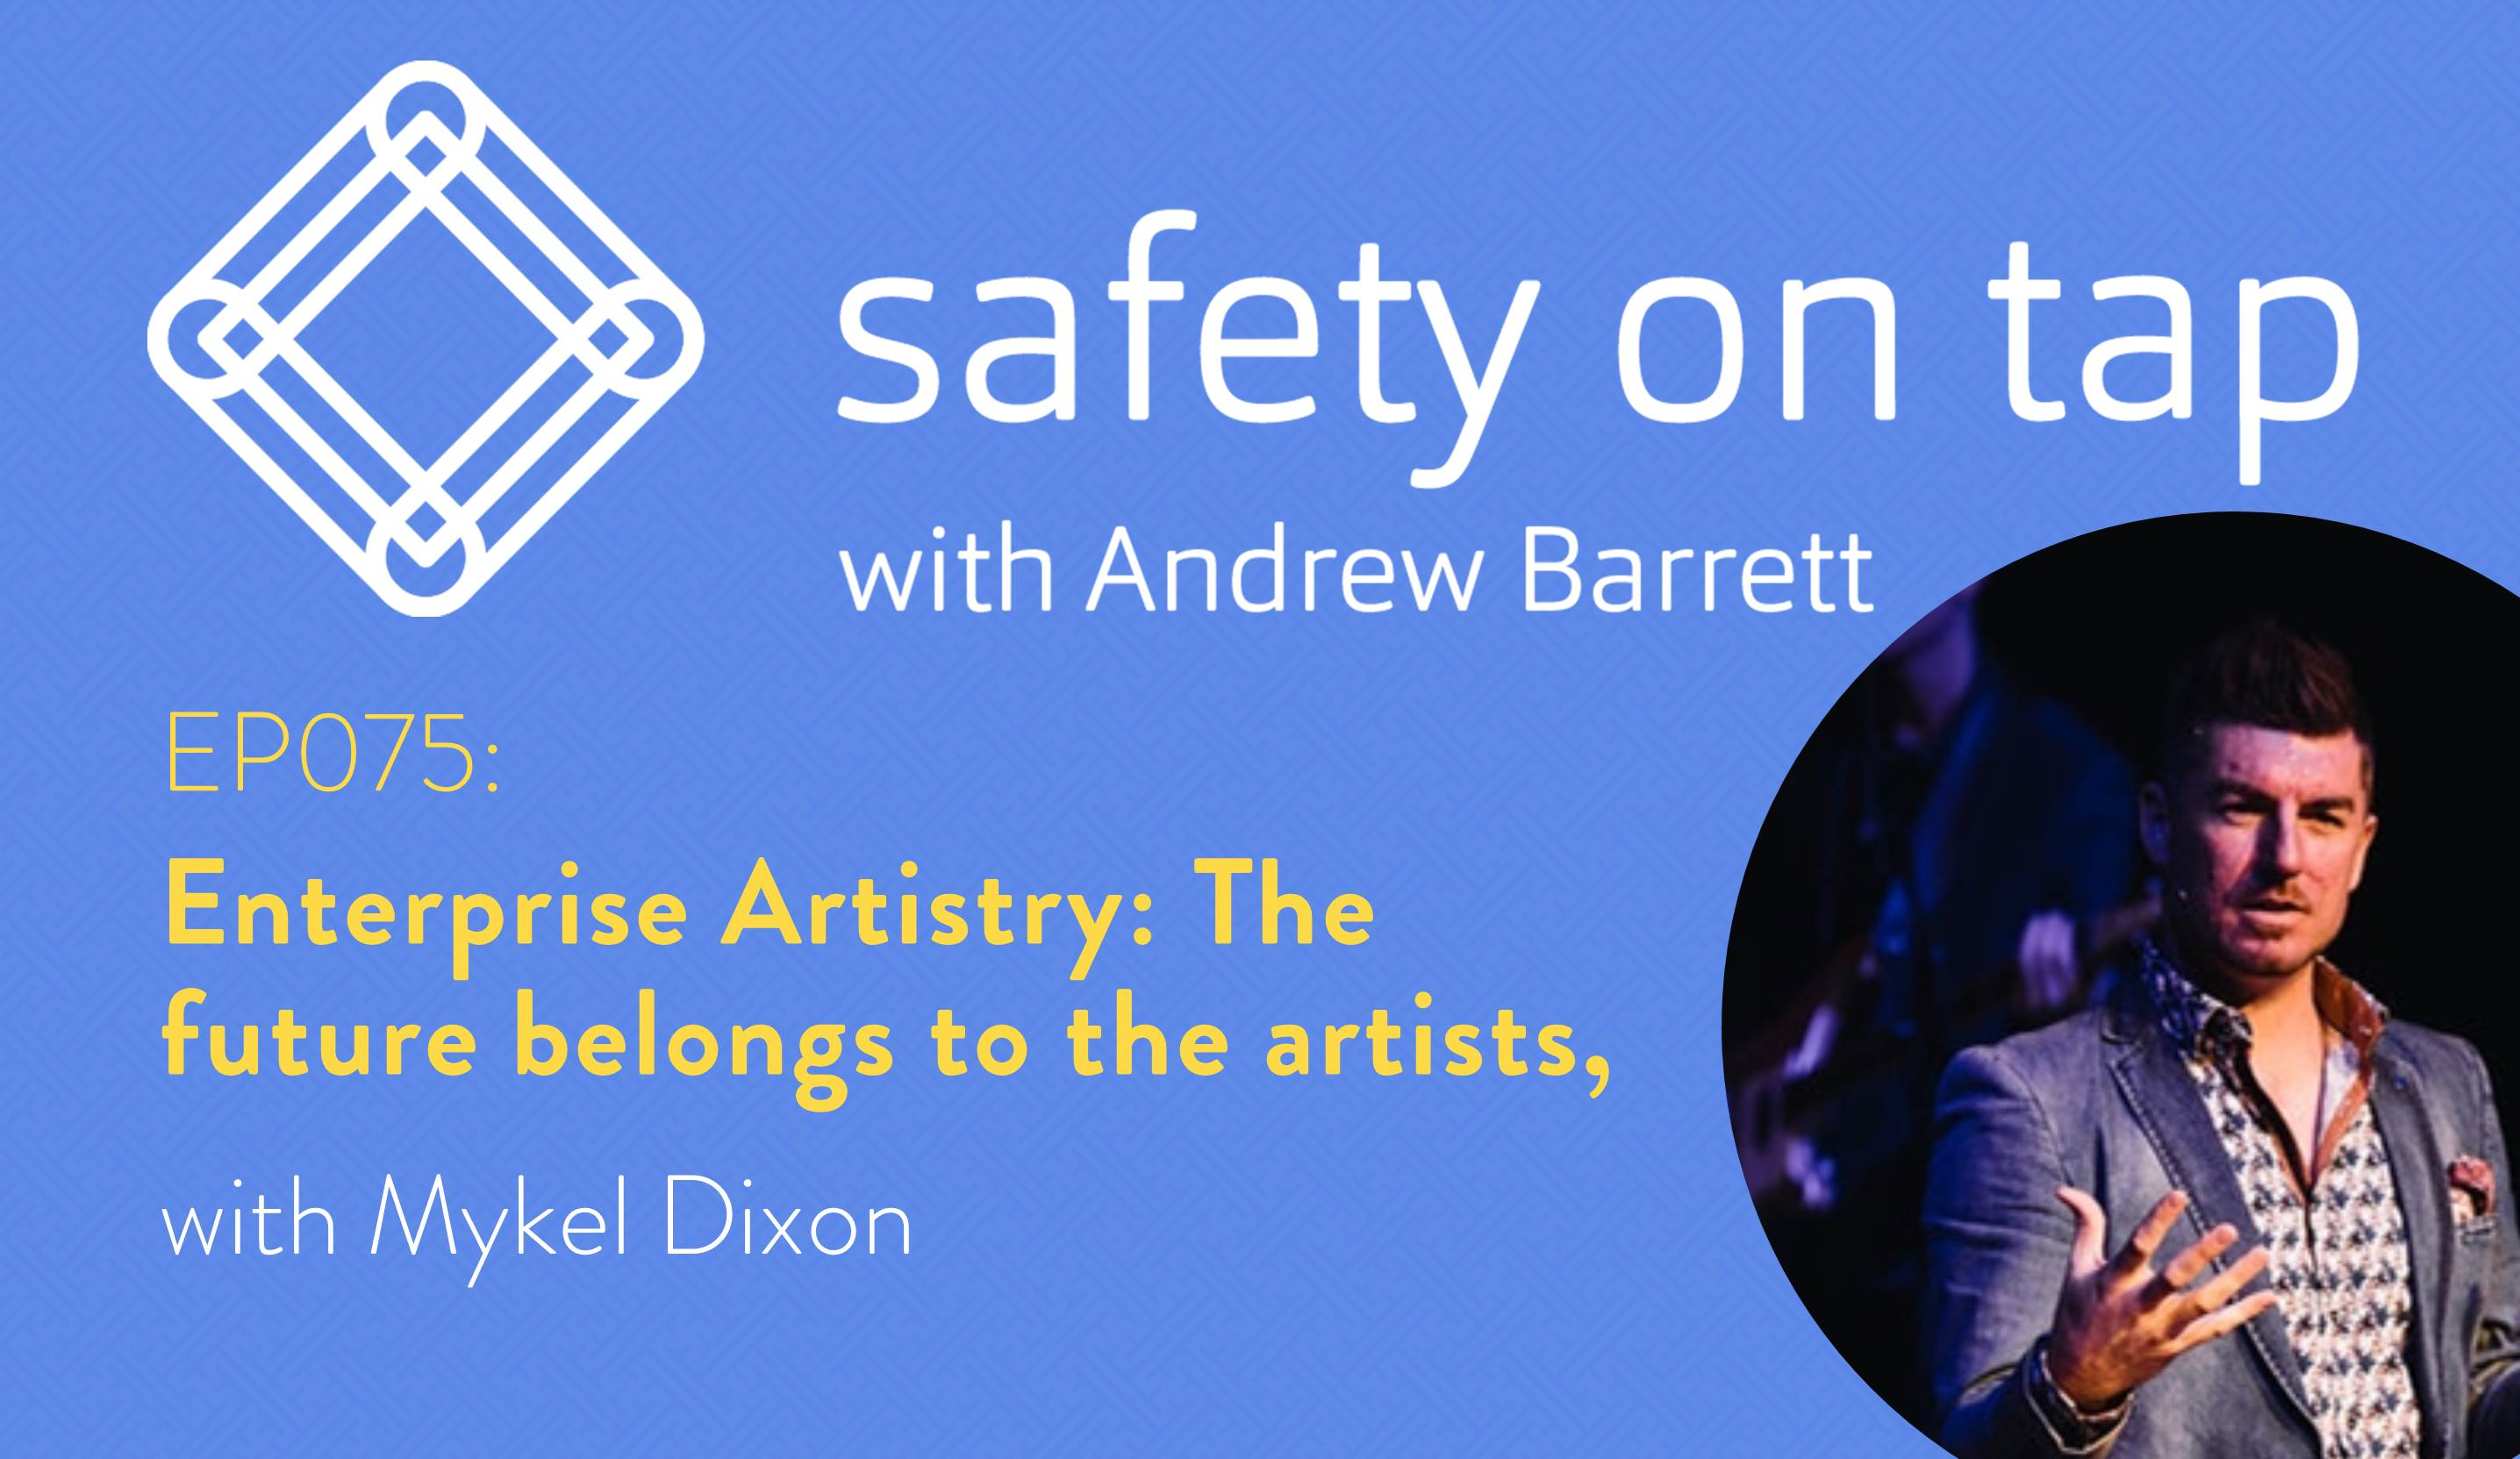 Ep075: Enterprise Artistry: The future belongs to the artists, with Mykel Dixon